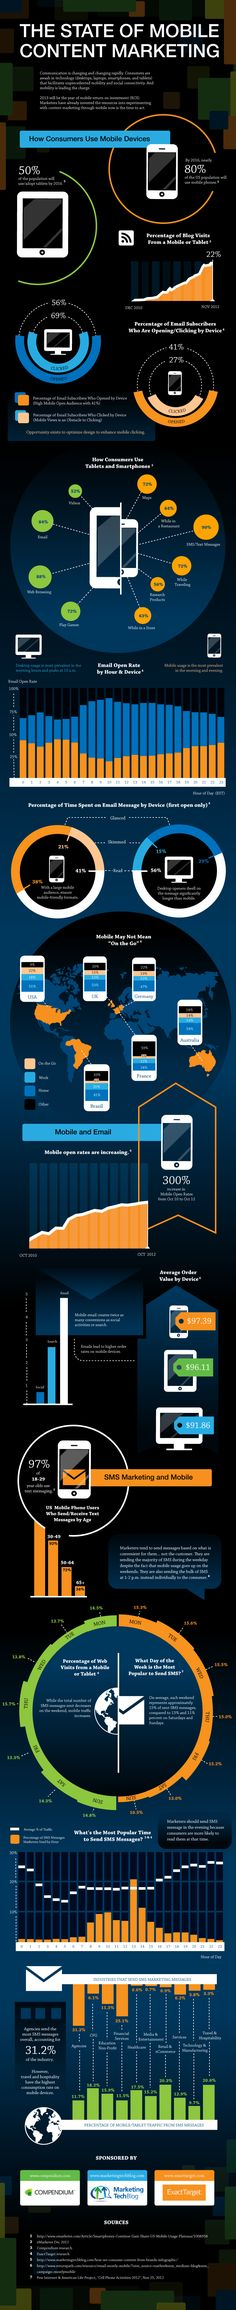 De opkomst van mobiele marketing [infographic] | C-Works!